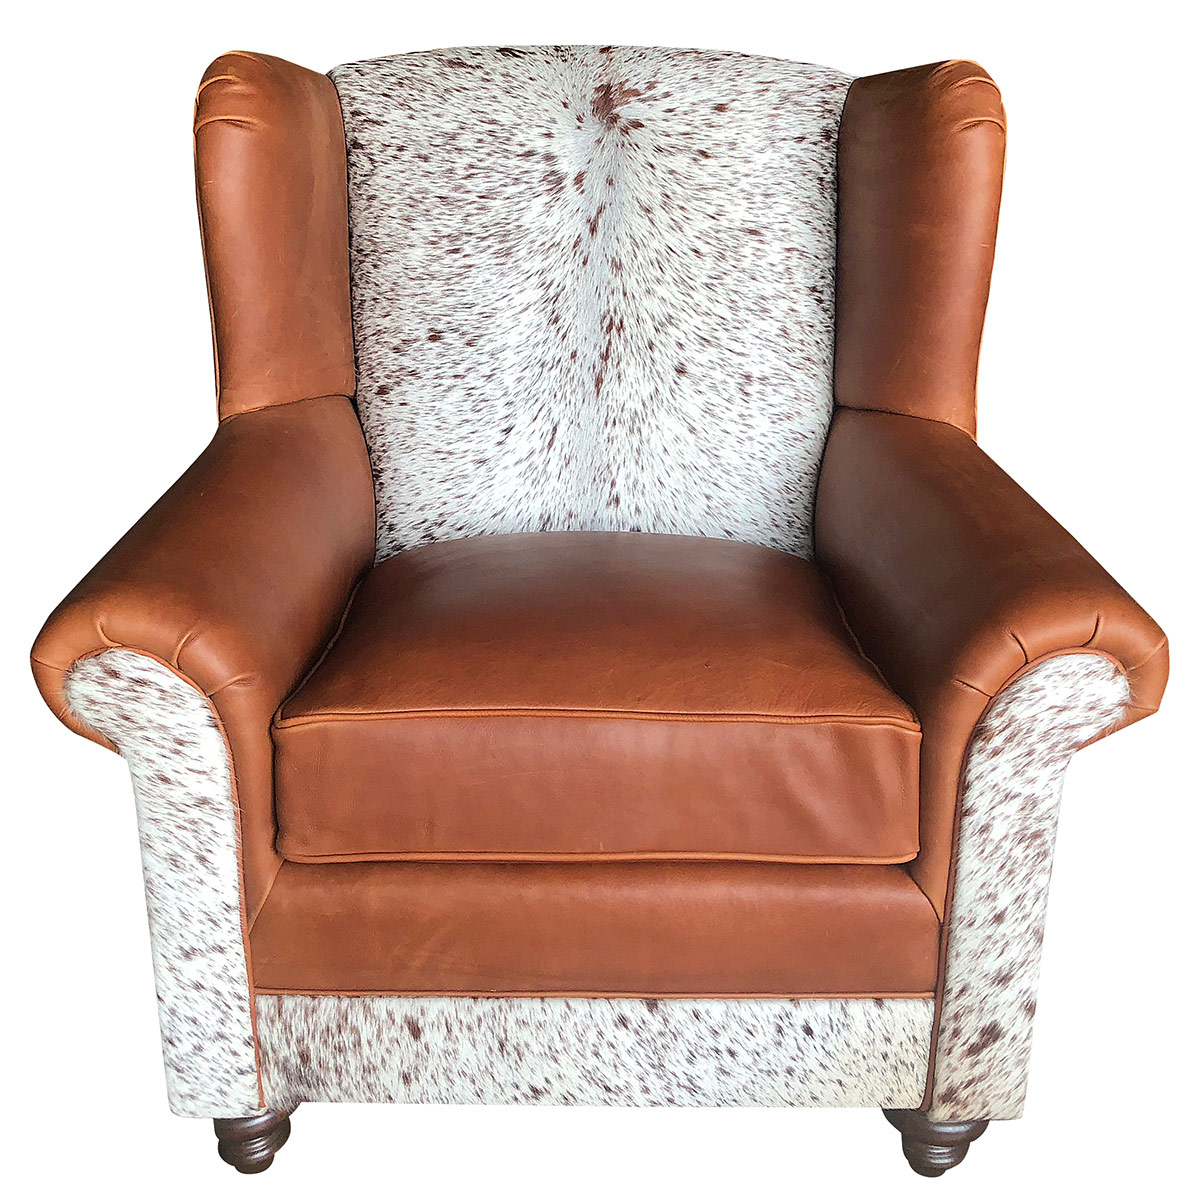 Longhorn Oversized Wingback Chair For Preferred Sweetwater Wingback Chairs (View 13 of 20)